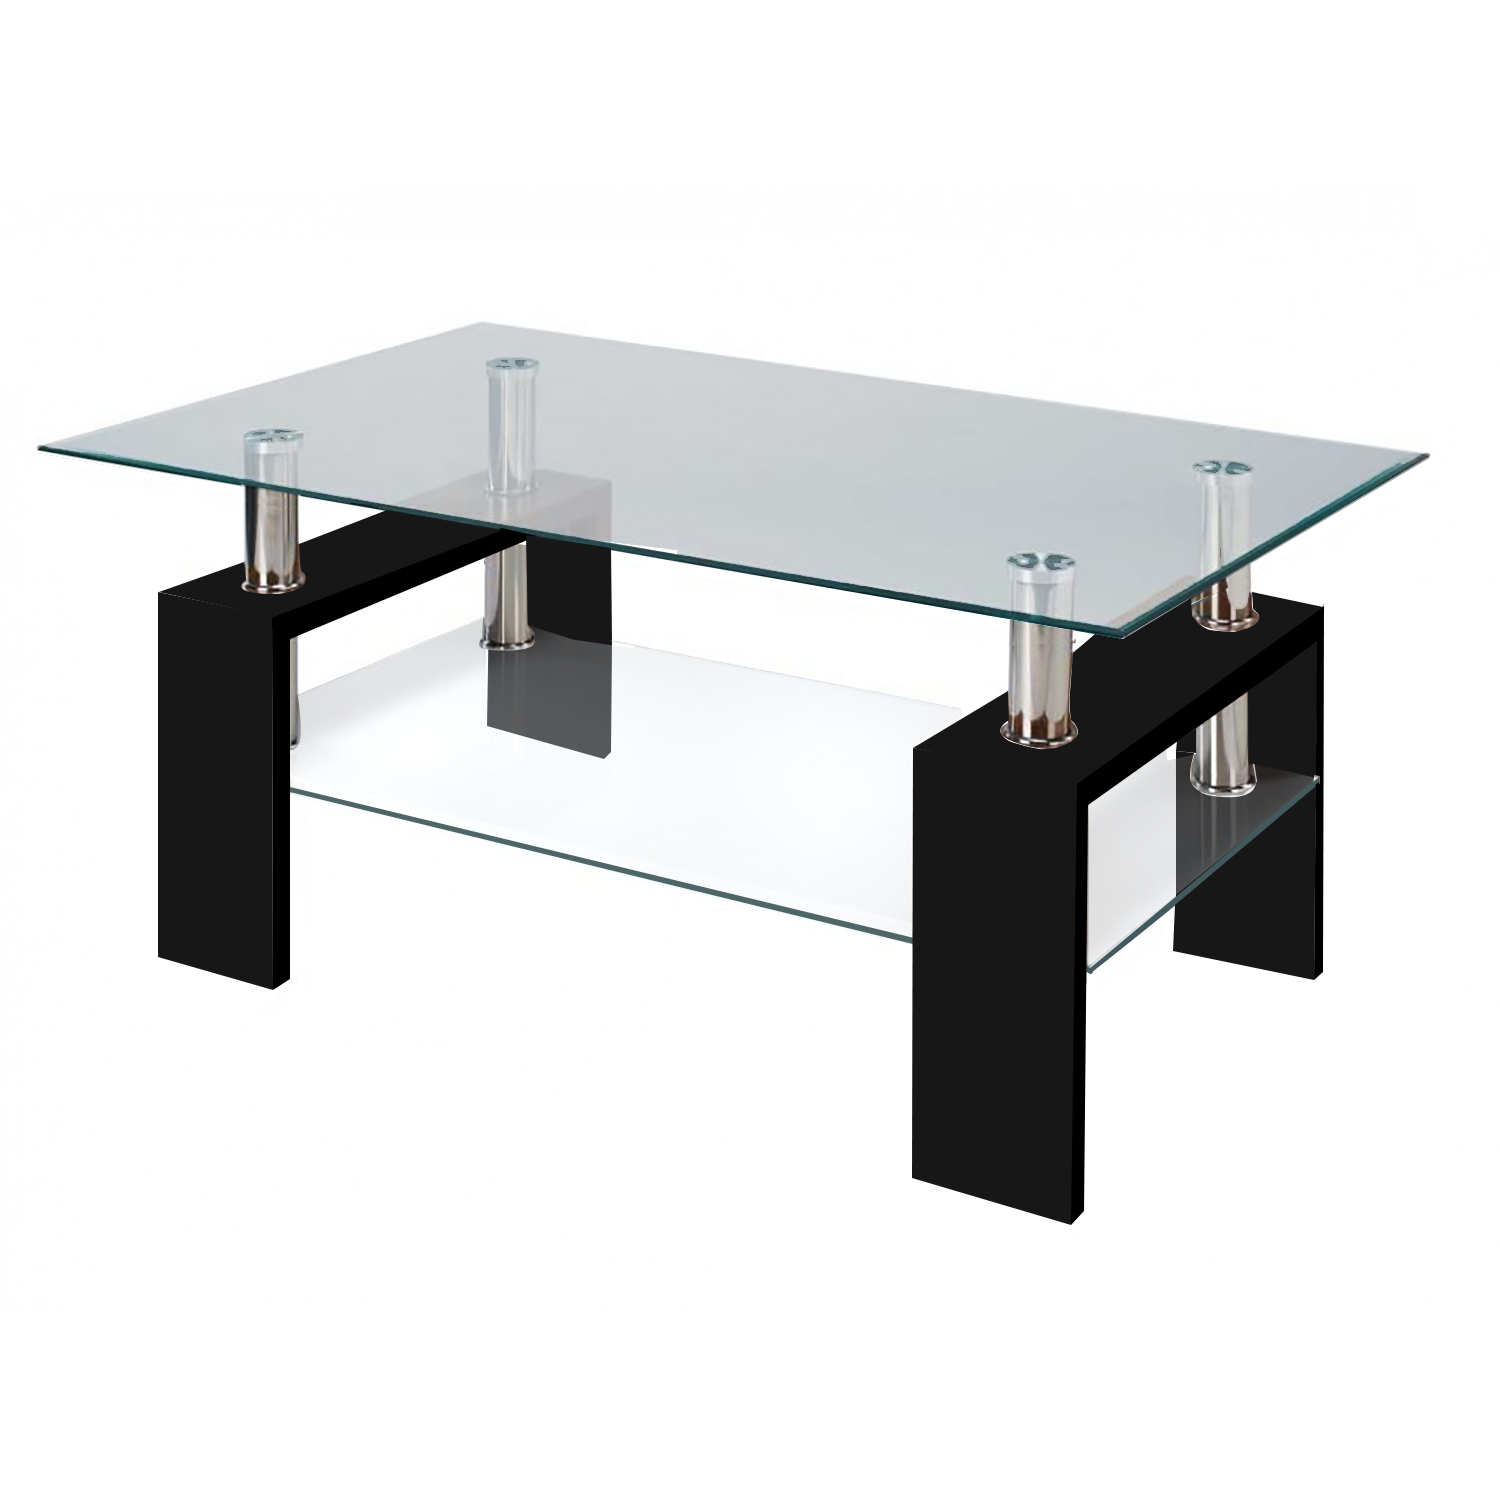 How Can A Glass Table Improve Your Home Glass Table Modern Glass Black Coffee Table With S Modern Glass Coffee Table Coffee Table With Shelf Red Coffee Tables